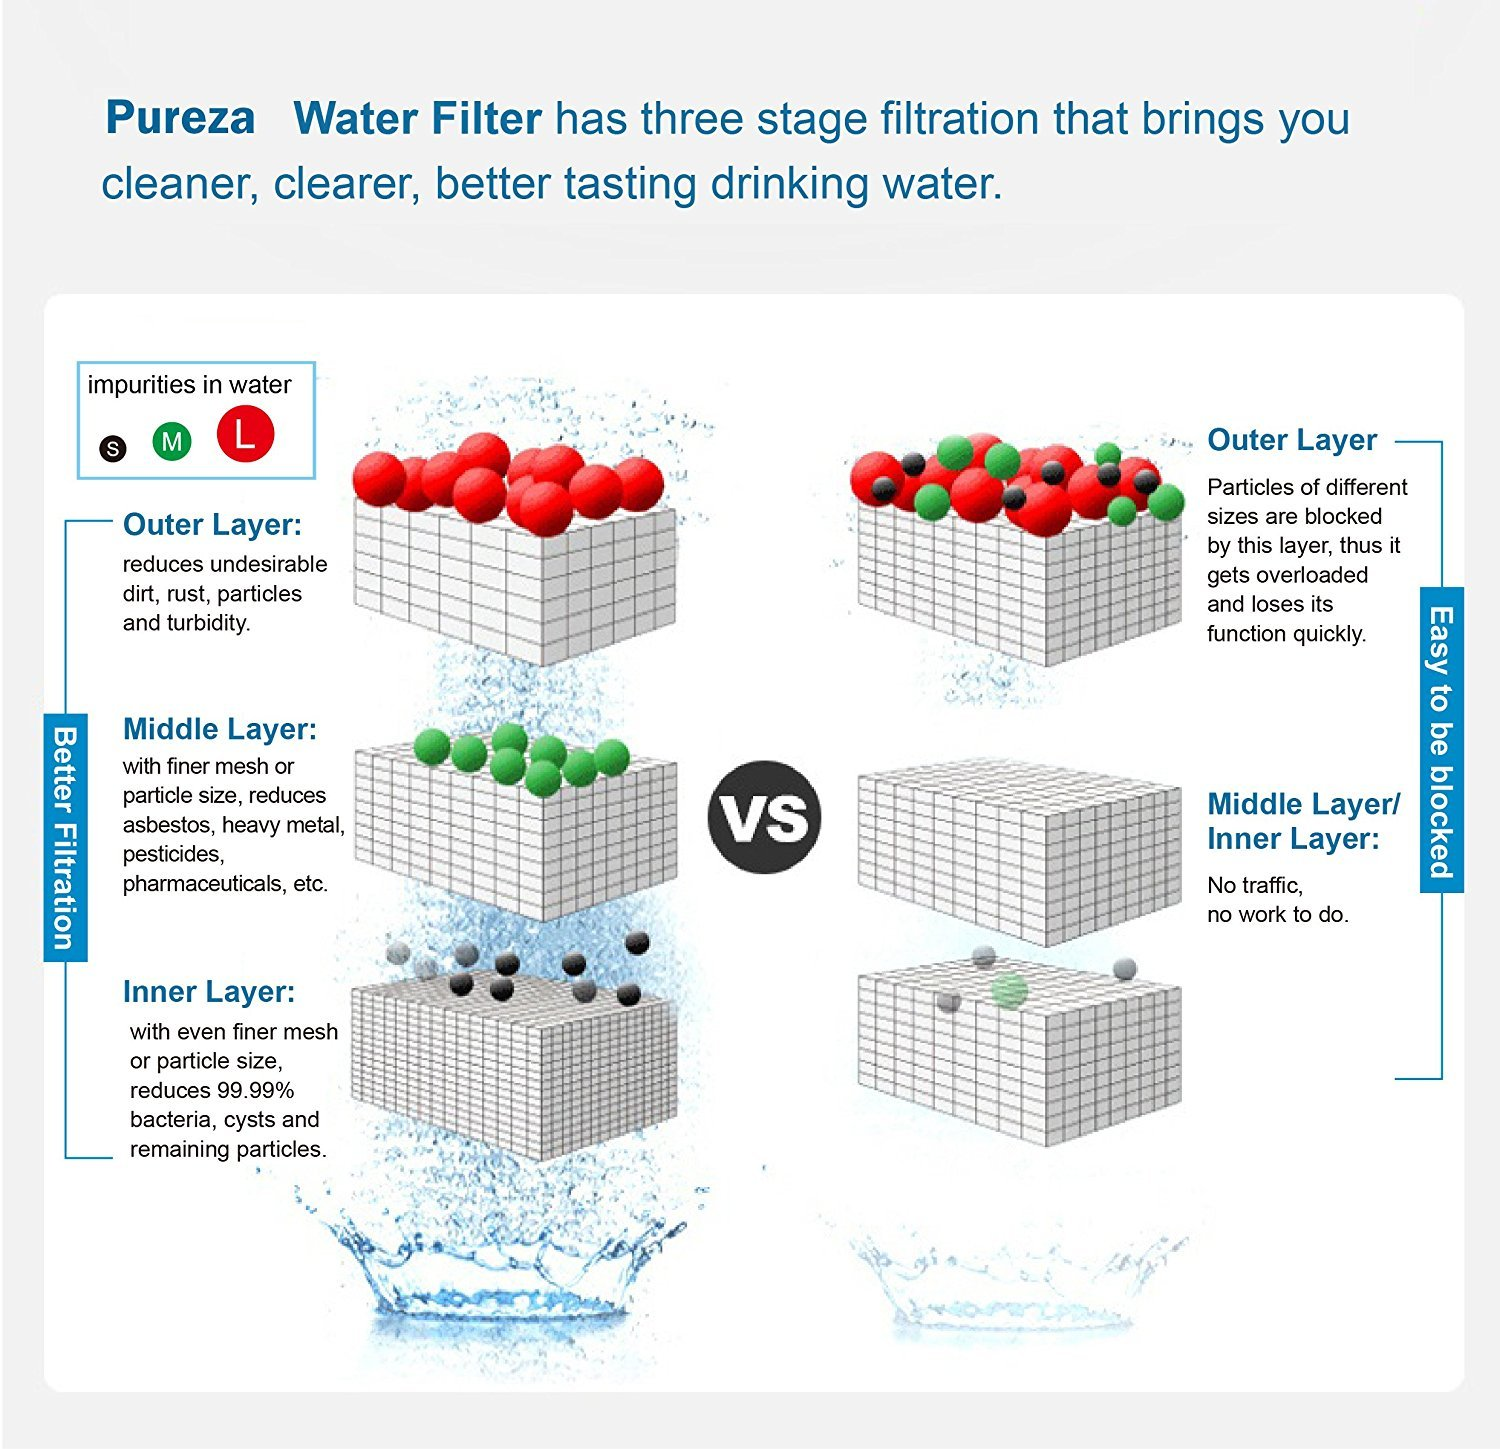 Pureza WF3CB Water Filter - Compatible with WF3CB, Pure Source 3 Refrigerator Water Filter, Pack of 3 by Pureza filters (Image #7)